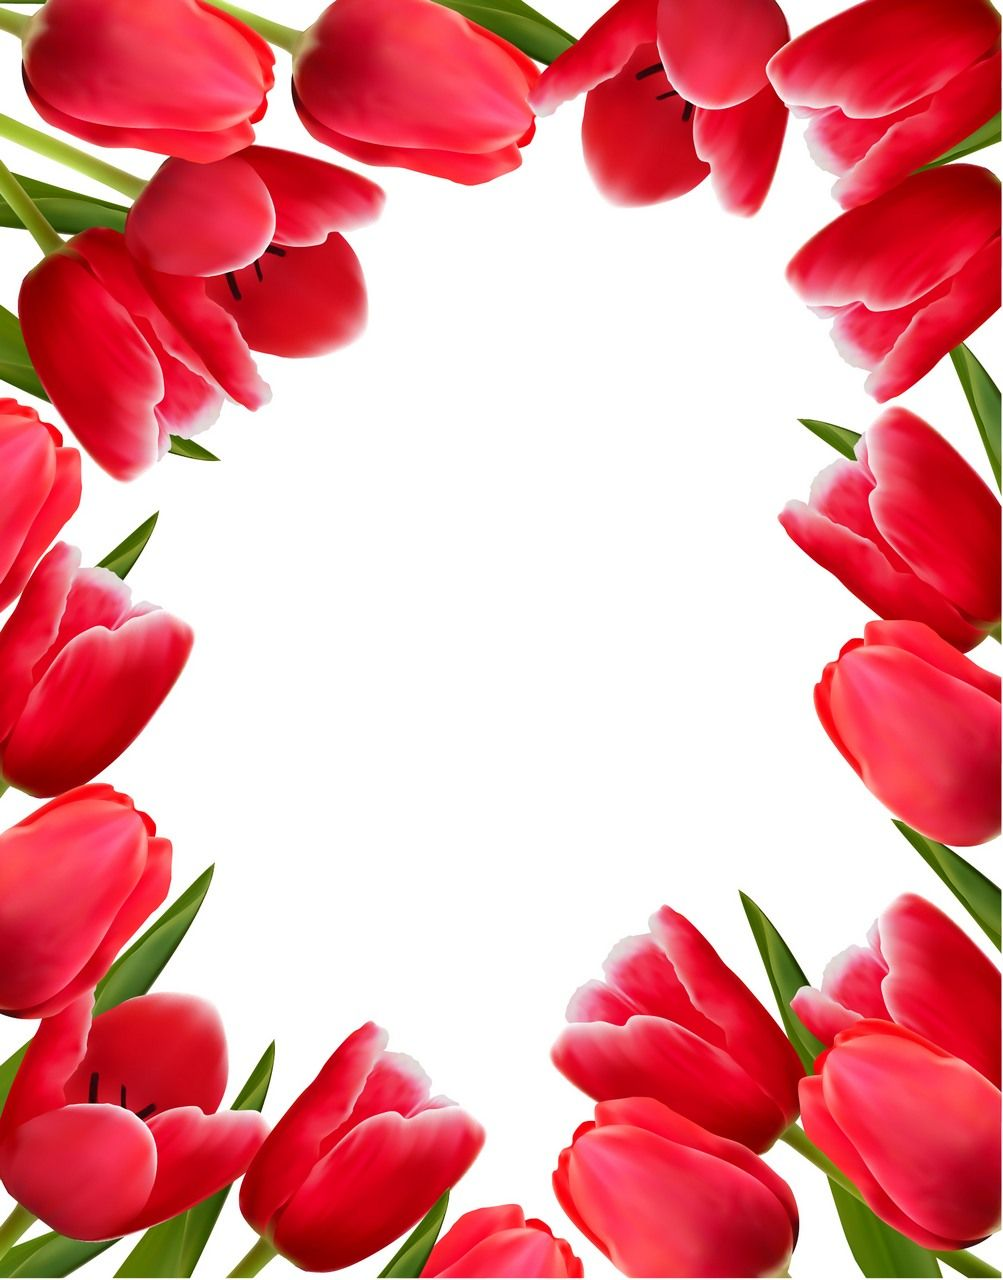 Flower Tulip Background 02 Flower Backgrounds Flower Frame Flowers